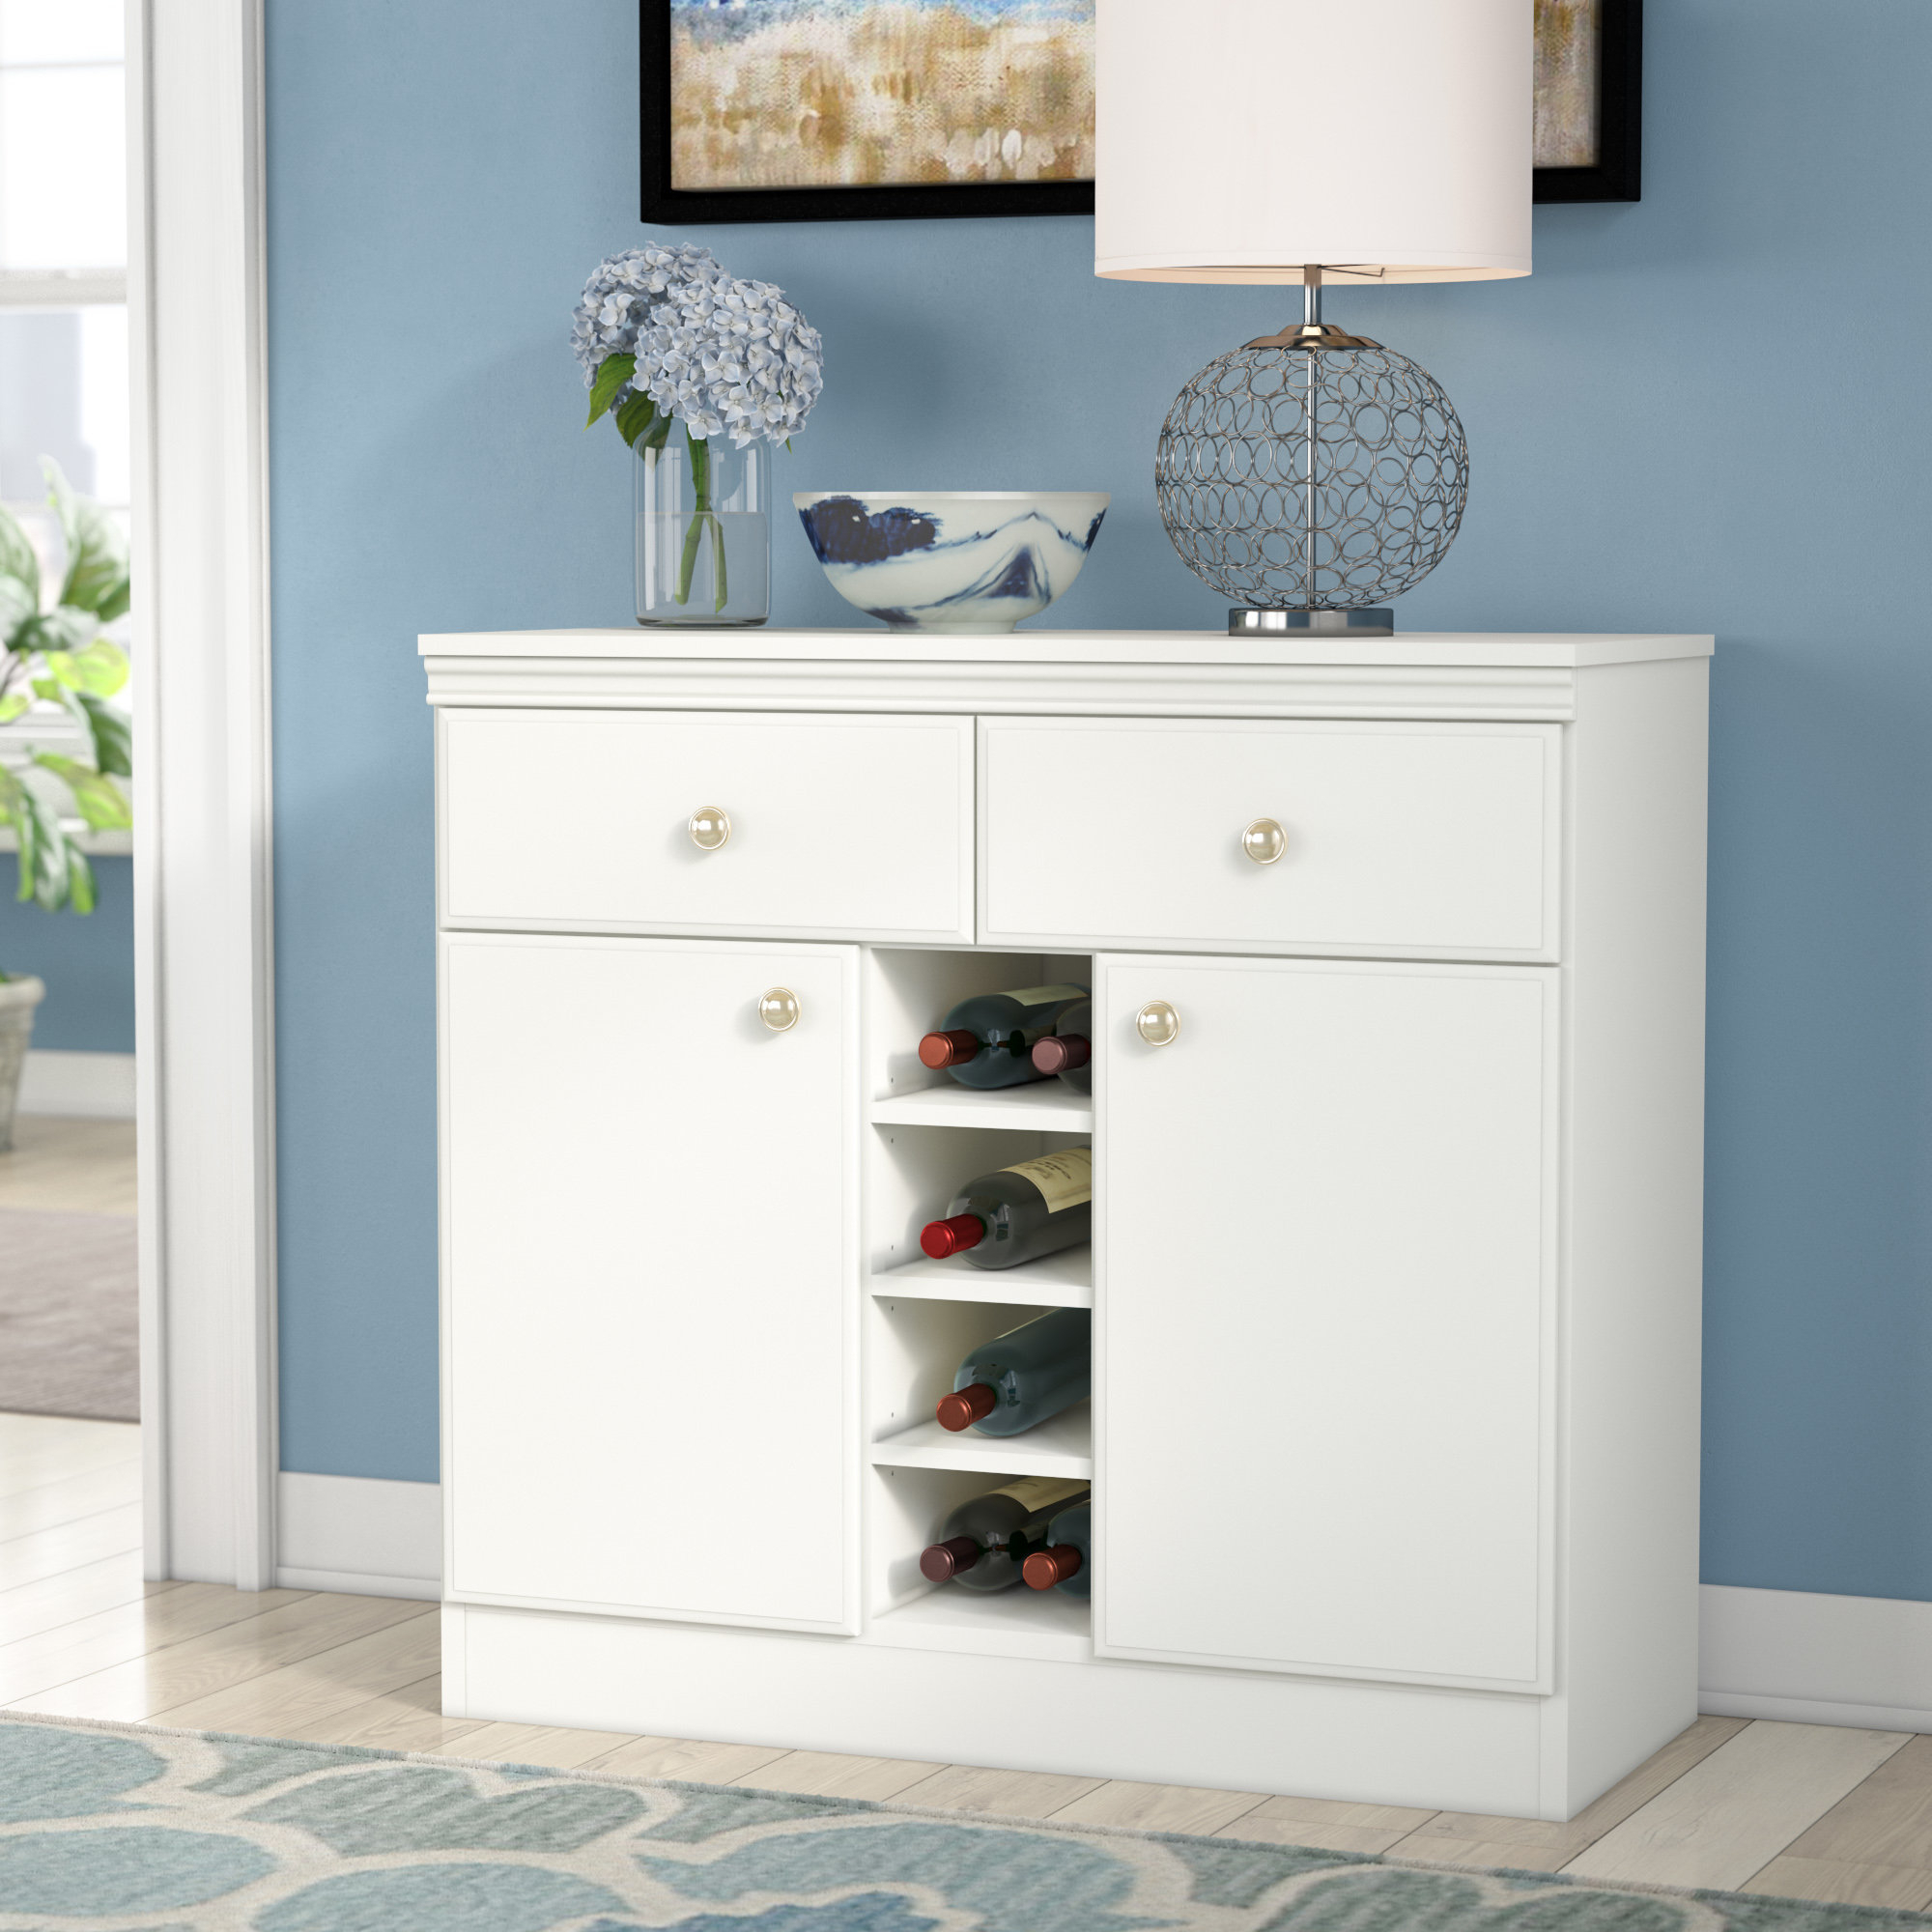 Caines Credenza With Favorite Caines Credenzas (Gallery 1 of 20)